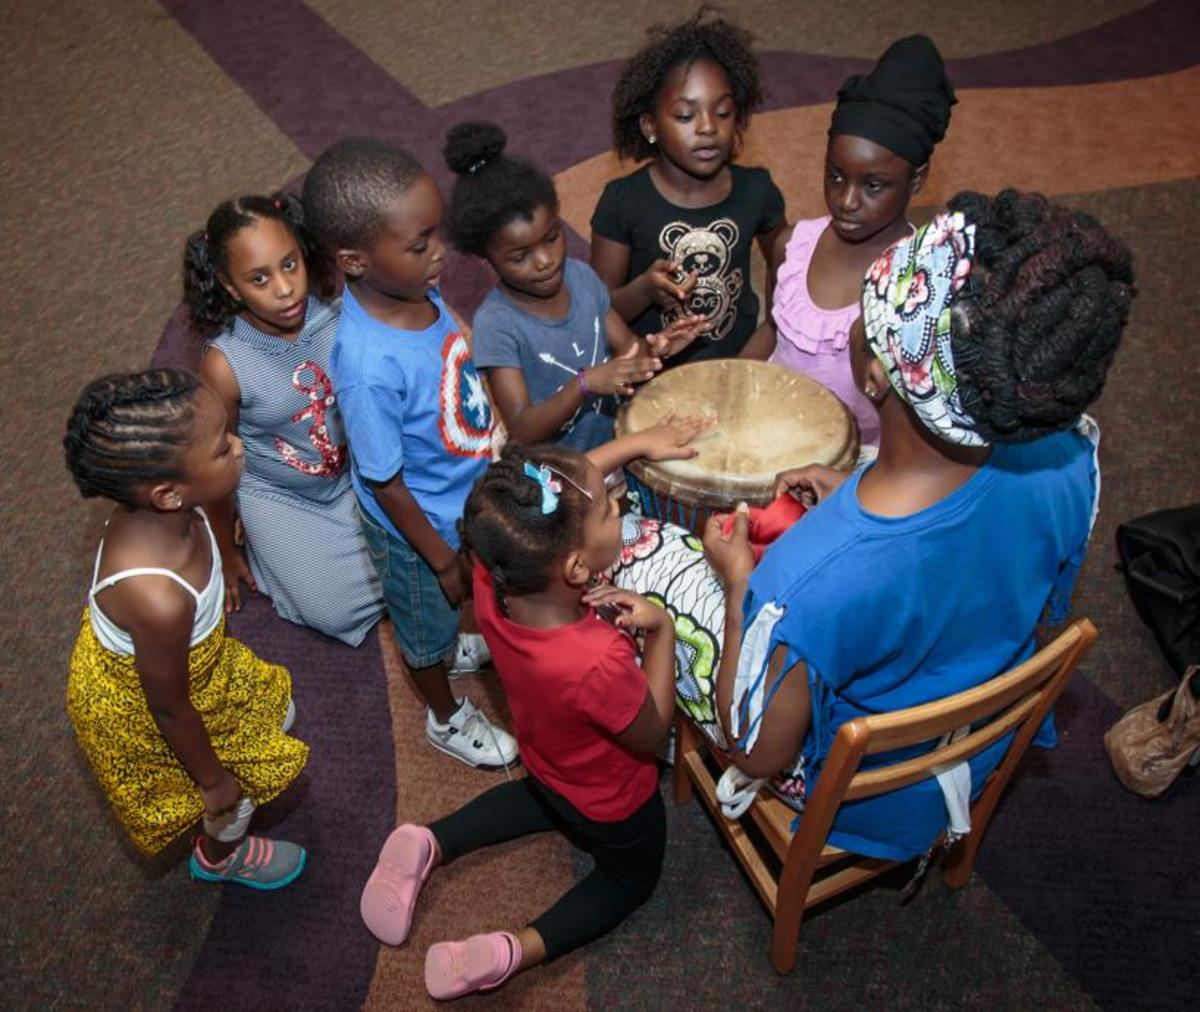 Sis. Omelika Teaches Youth About the Drum at the Atlanta Public Library.